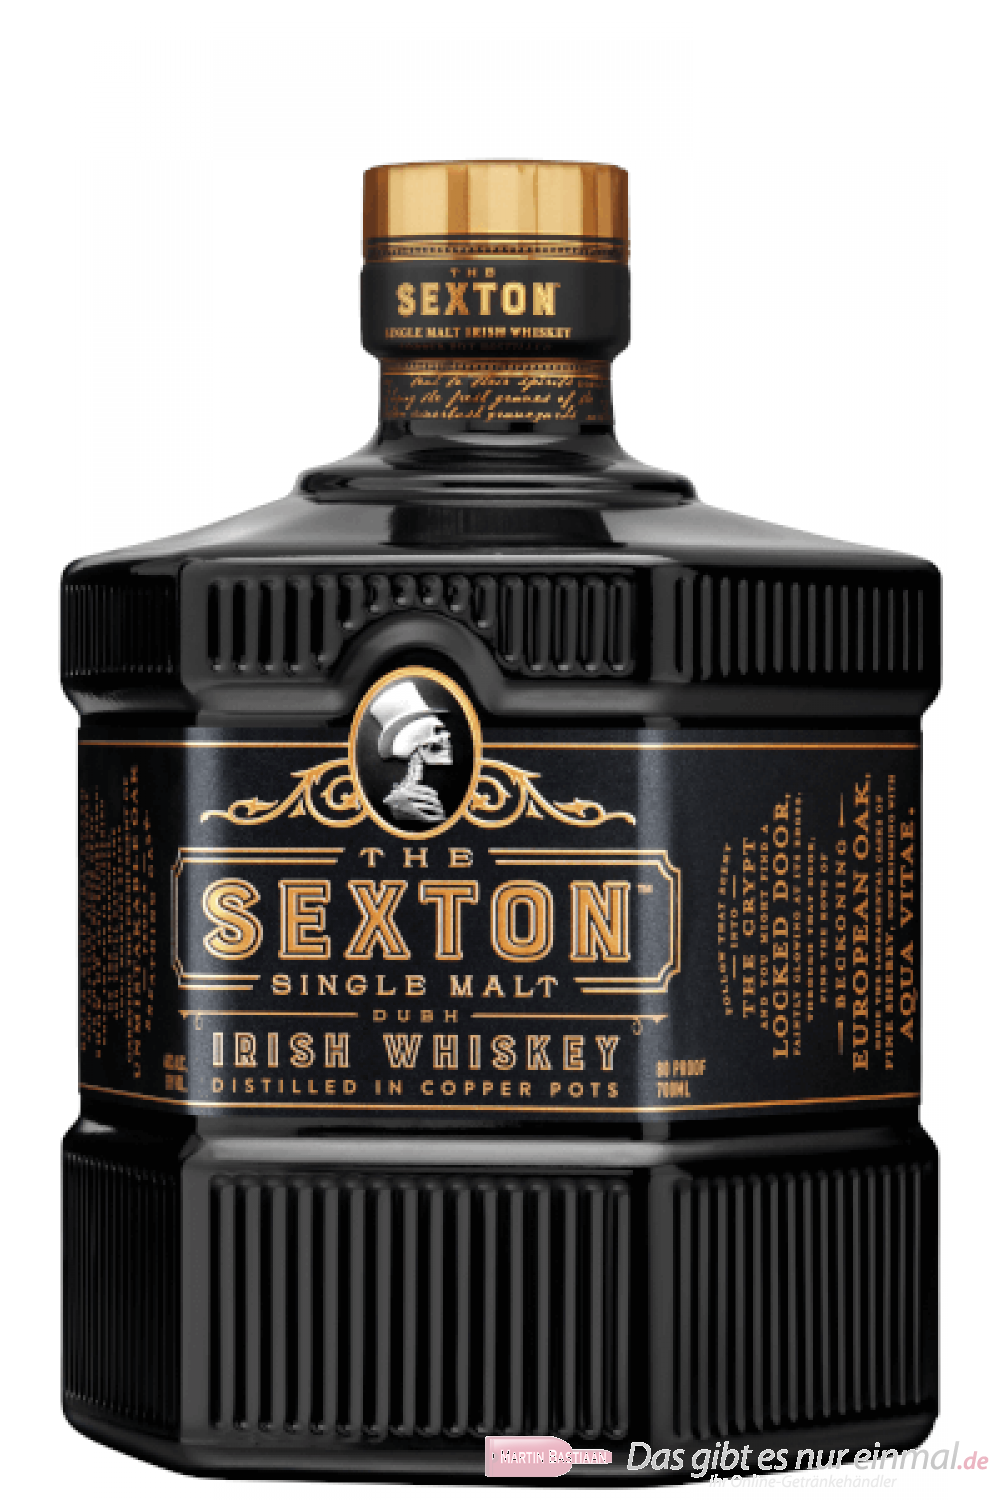 The Sexton Single Malt Irish Whiskey 40% 0,7l Flasche